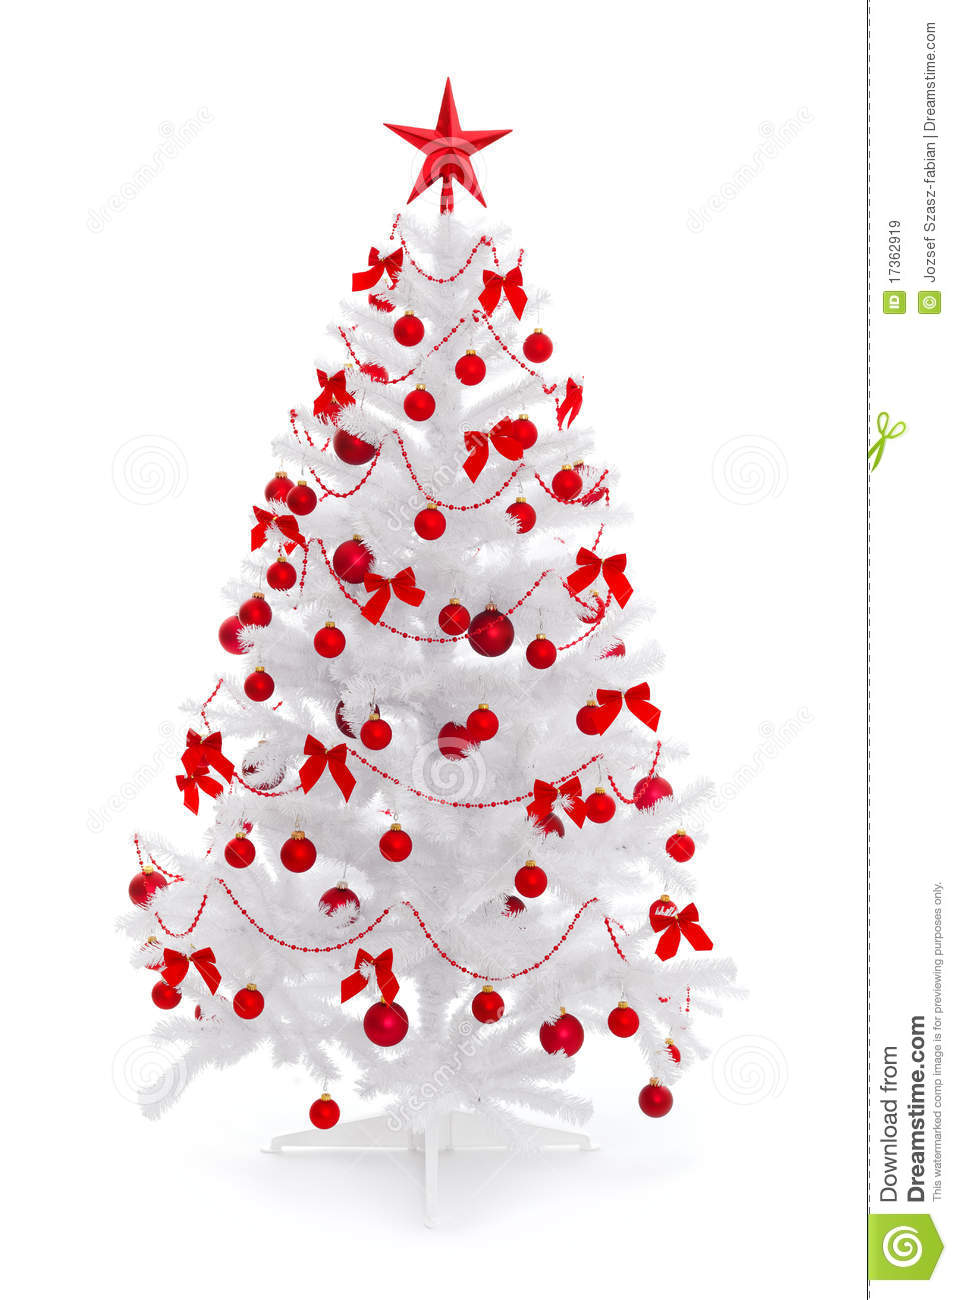 download white christmas tree with red decoration stock image image of traditional holiday - White Christmas Tree With Red Decorations